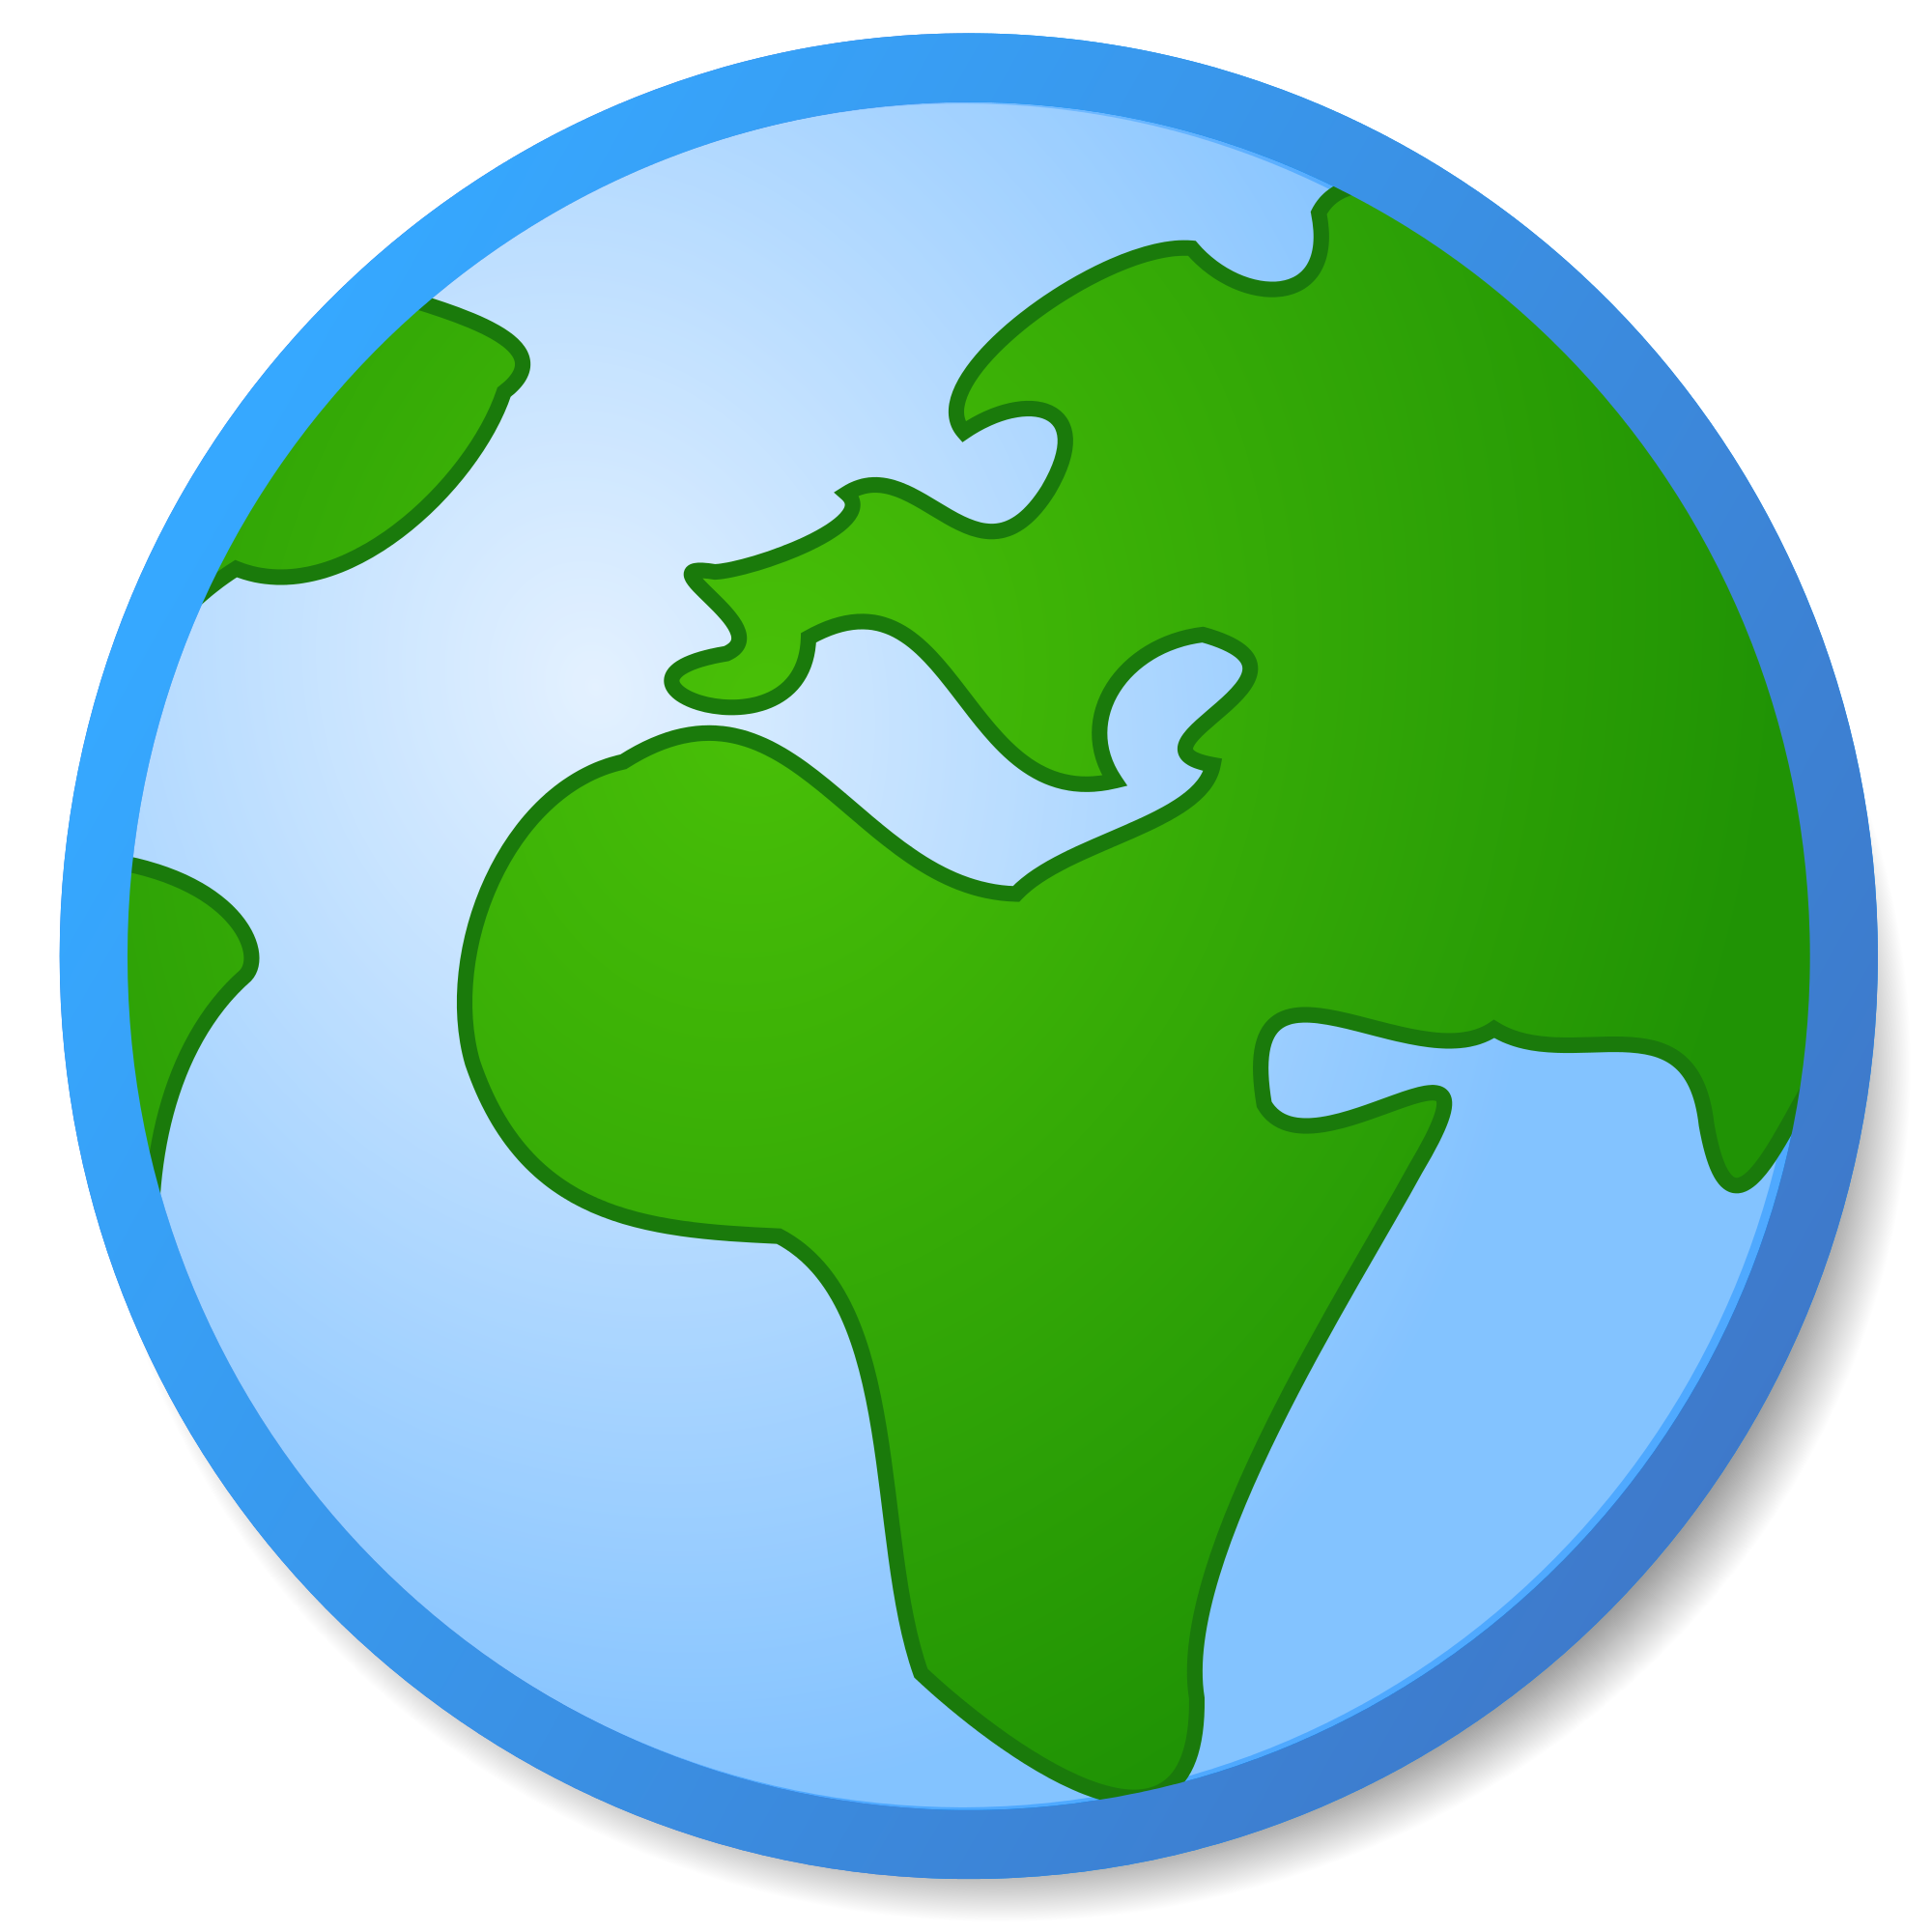 Earth svg #16, Download drawings